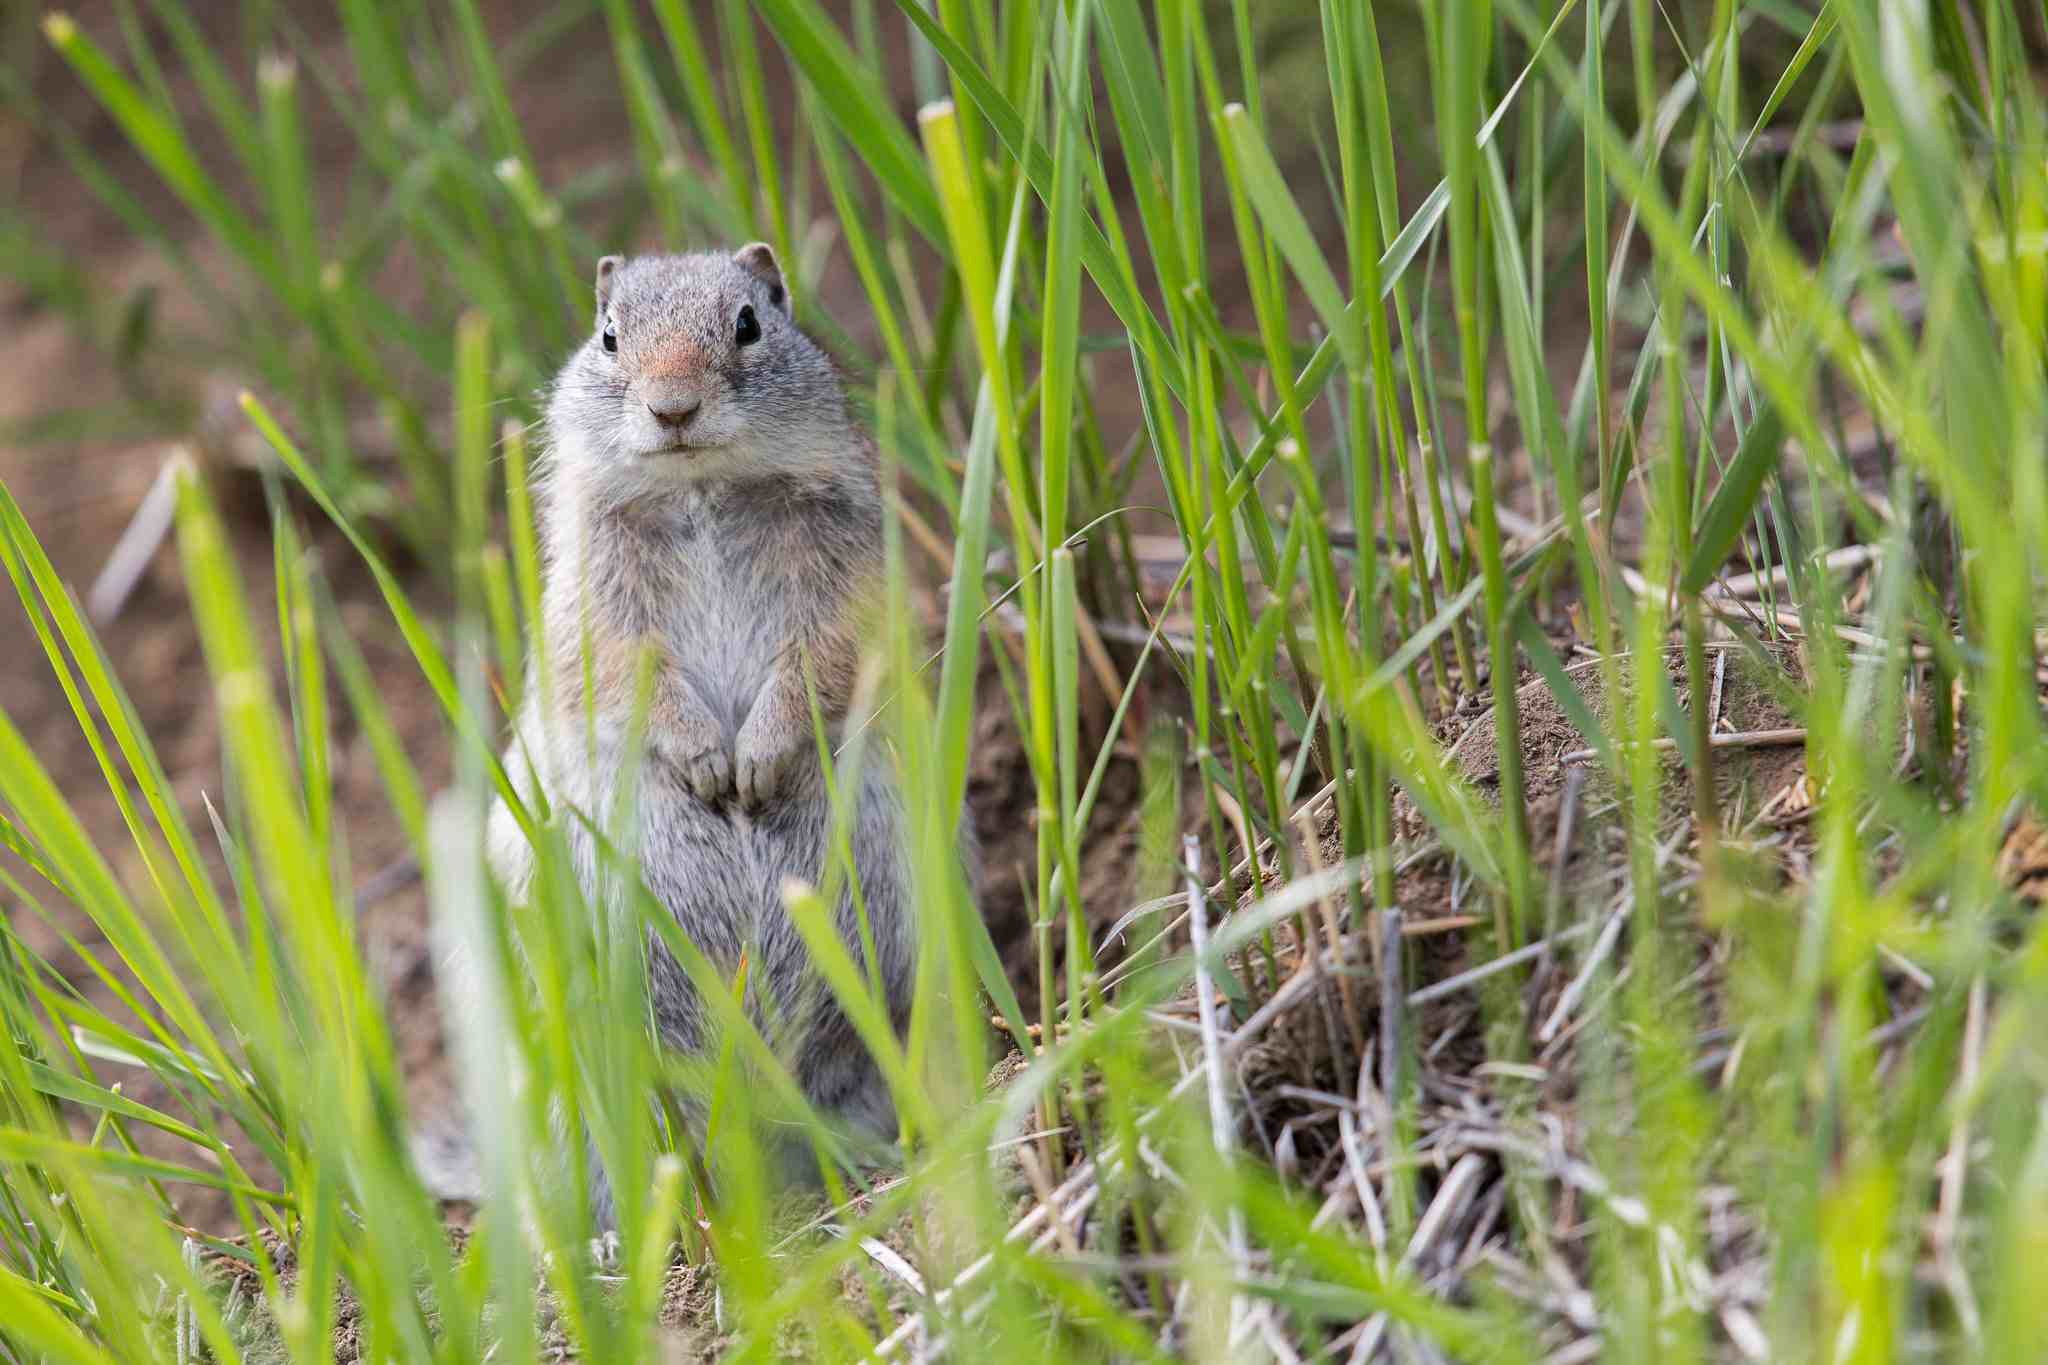 Uinta ground squirrel sitting in the grass looking at the camera.